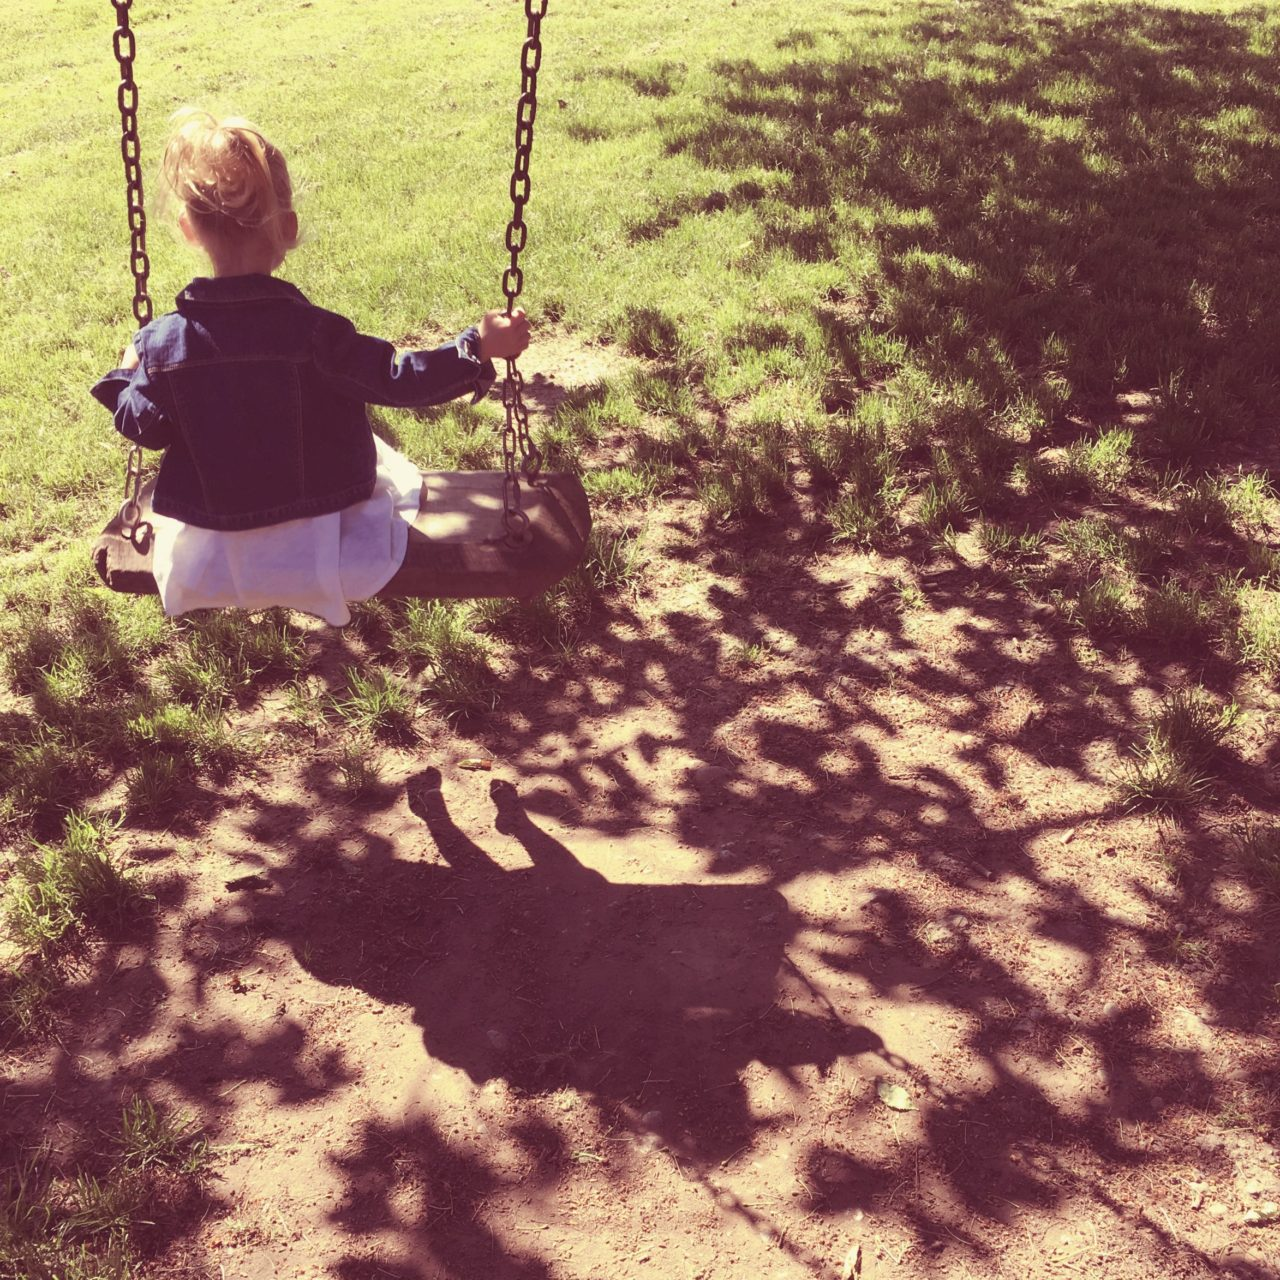 Learning To Best Utilize Summer Screen Time For Your Kids